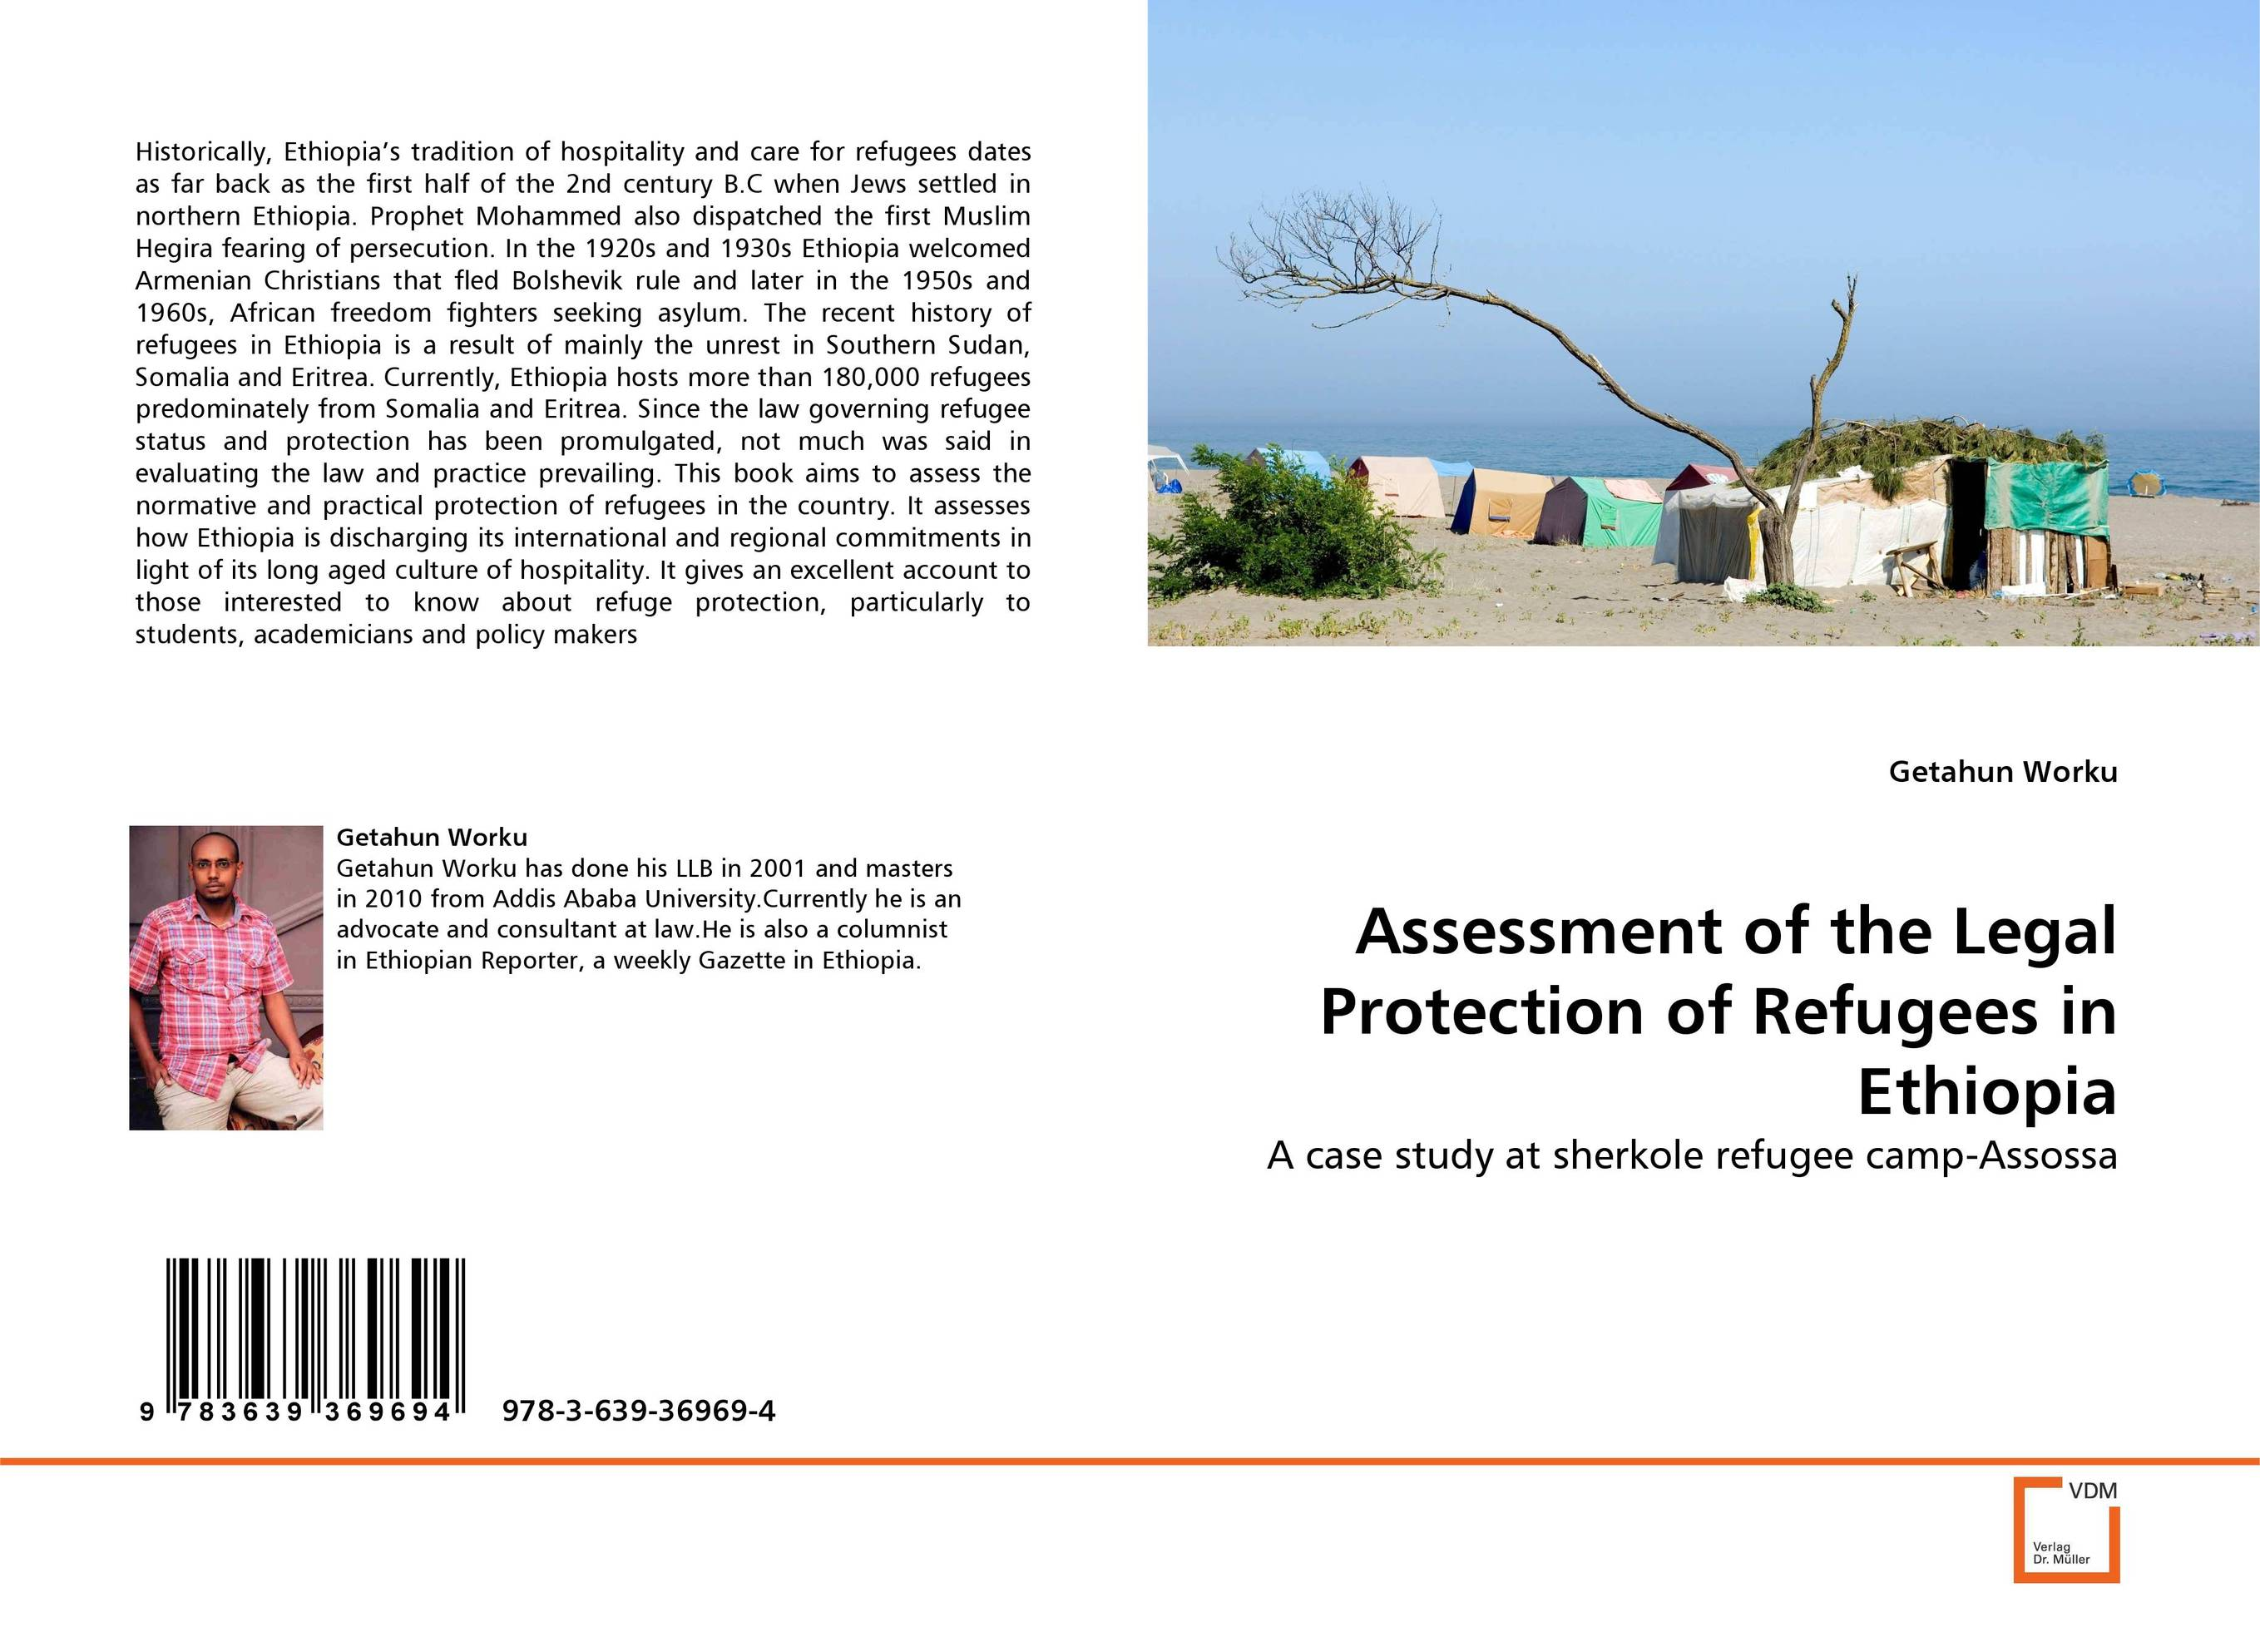 Assessment of the Legal Protection of Refugees in Ethiopia monetary policy and its application in ethiopia